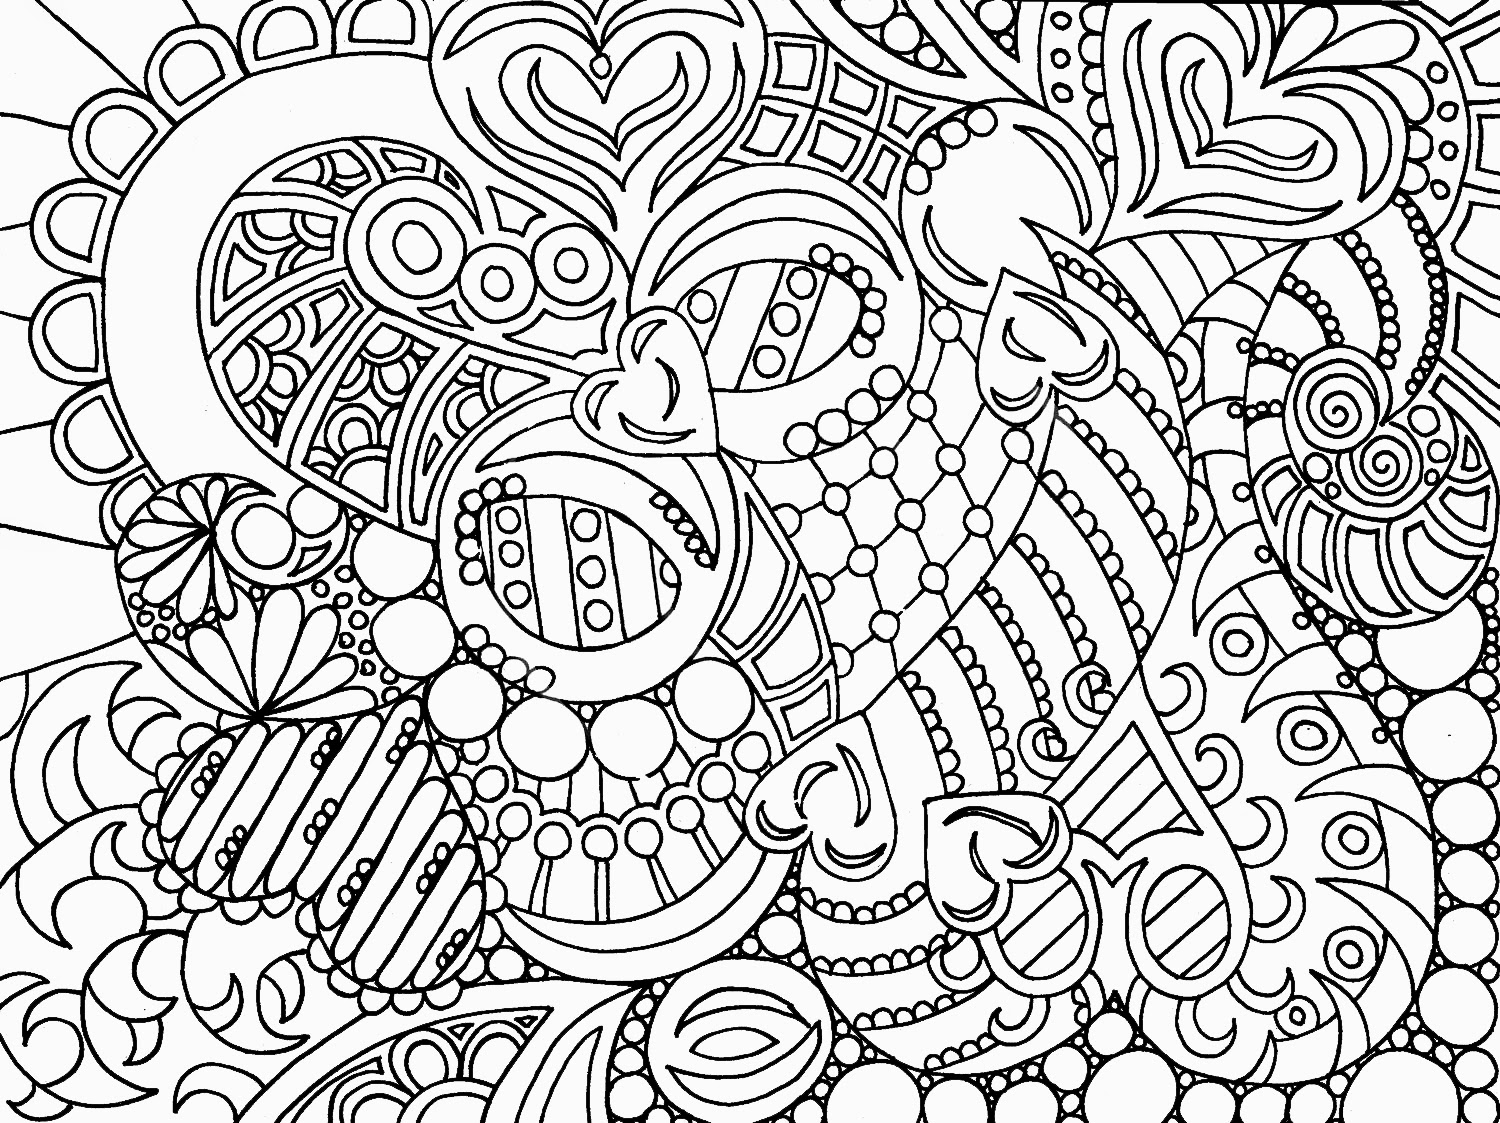 art coloring pages for kids - photo#33